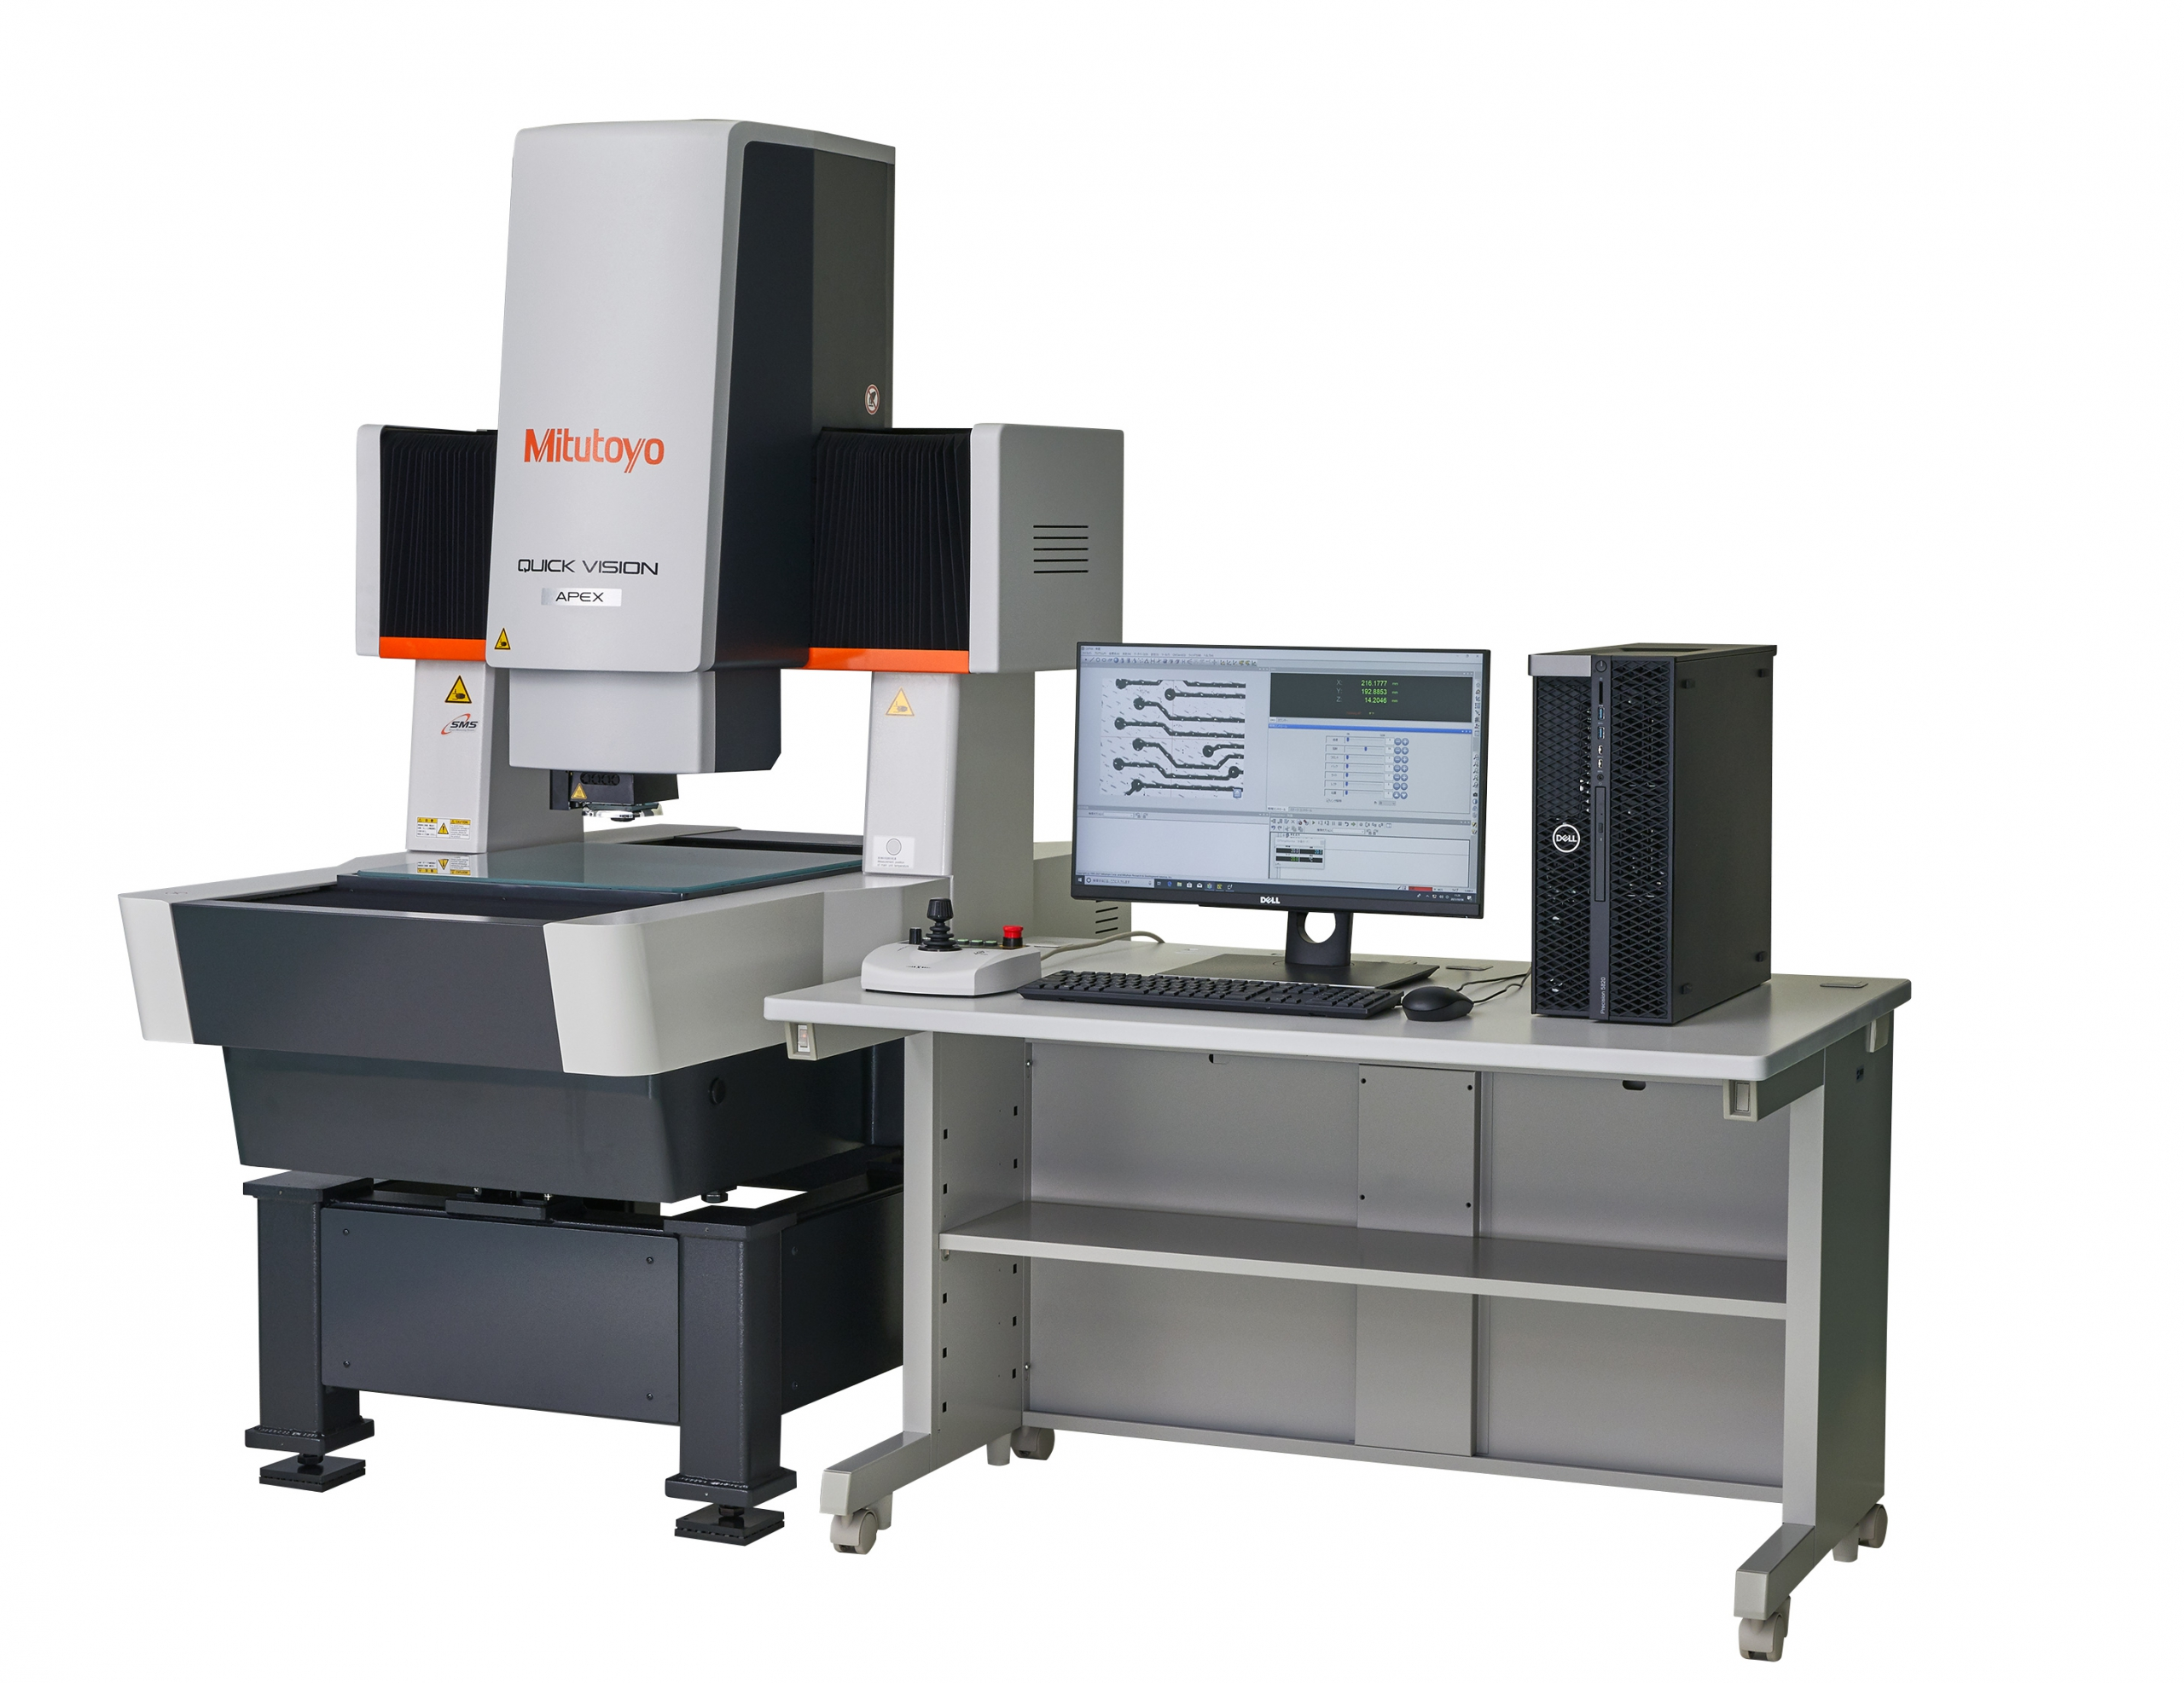 """Mitutoyo releases its CNC Vision Measuring System """"Quick Vision Pro series"""" with improved measurement throughput and usability"""